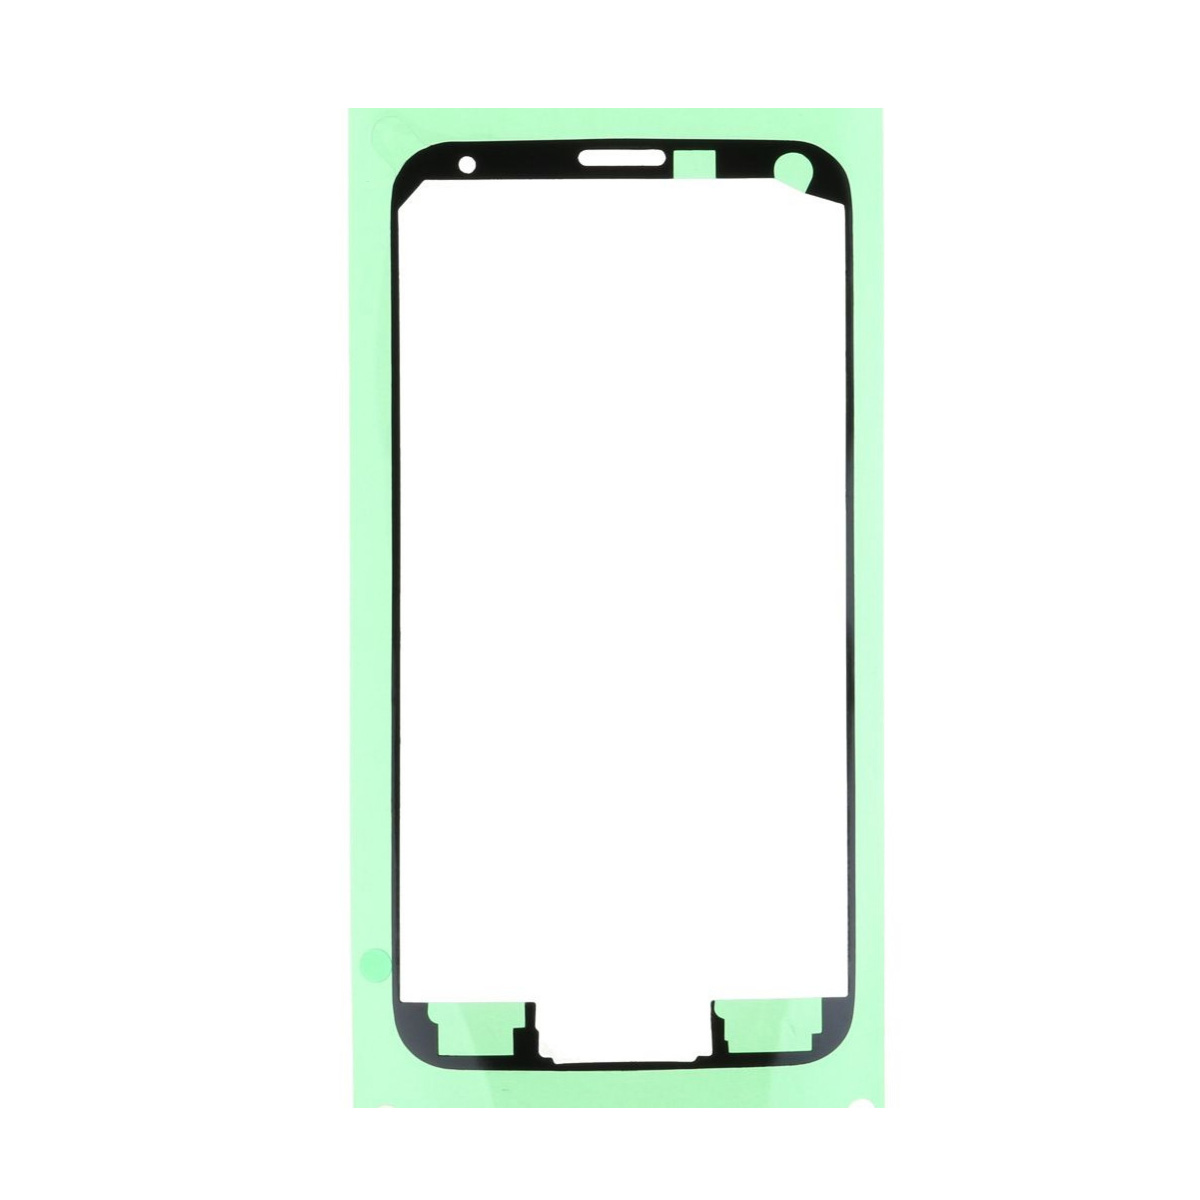 10pcs/lot Front Housing Frame Adhesive Sticker For Samsung Galaxy S5 G900 G900F